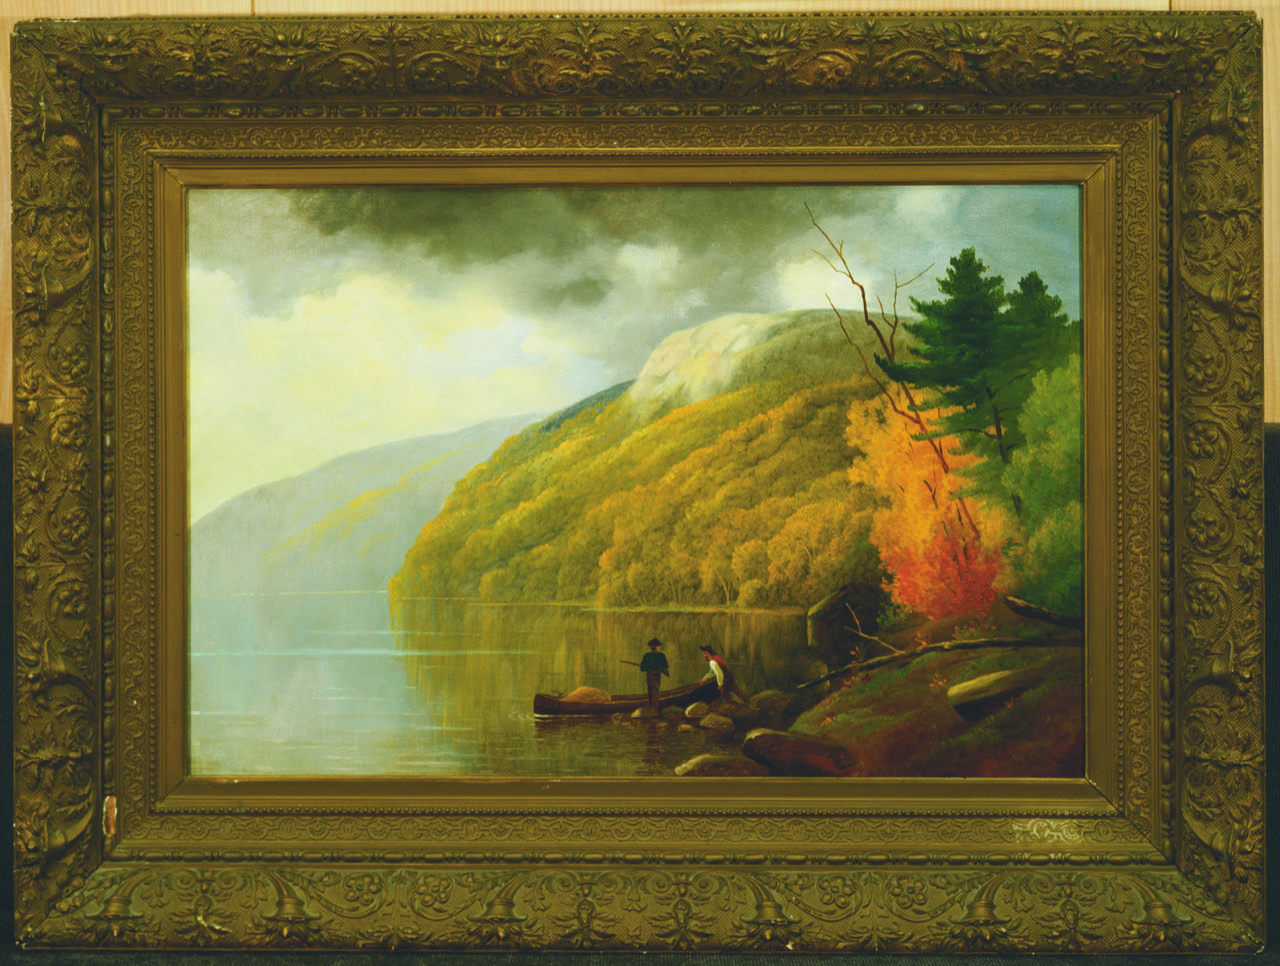 a framed painting of nature